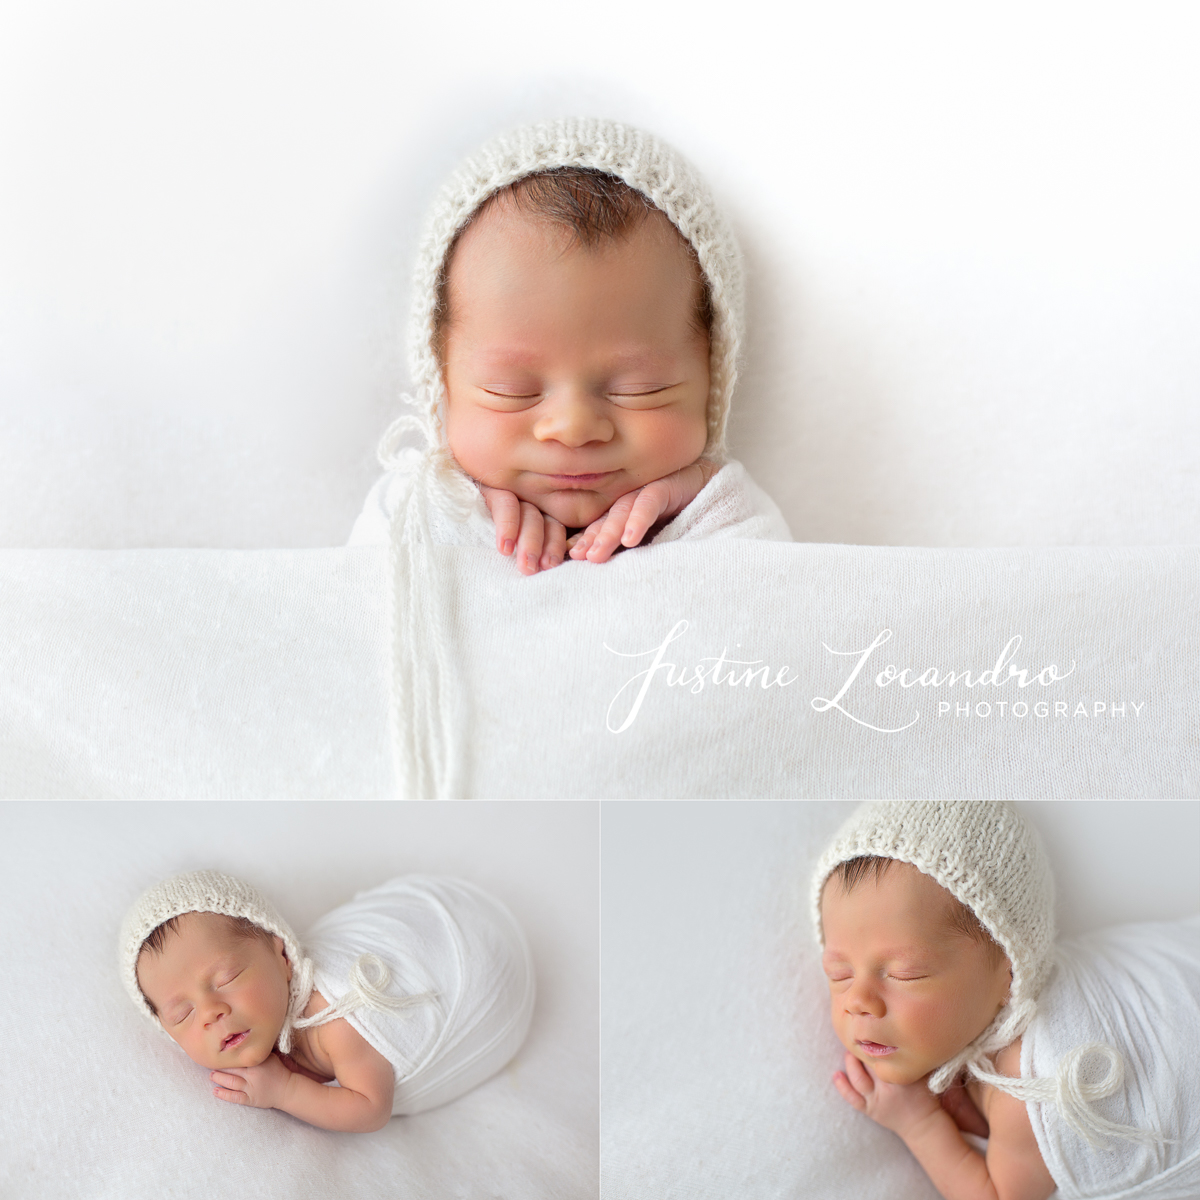 Photograph of newborn baby boy with white neutral background